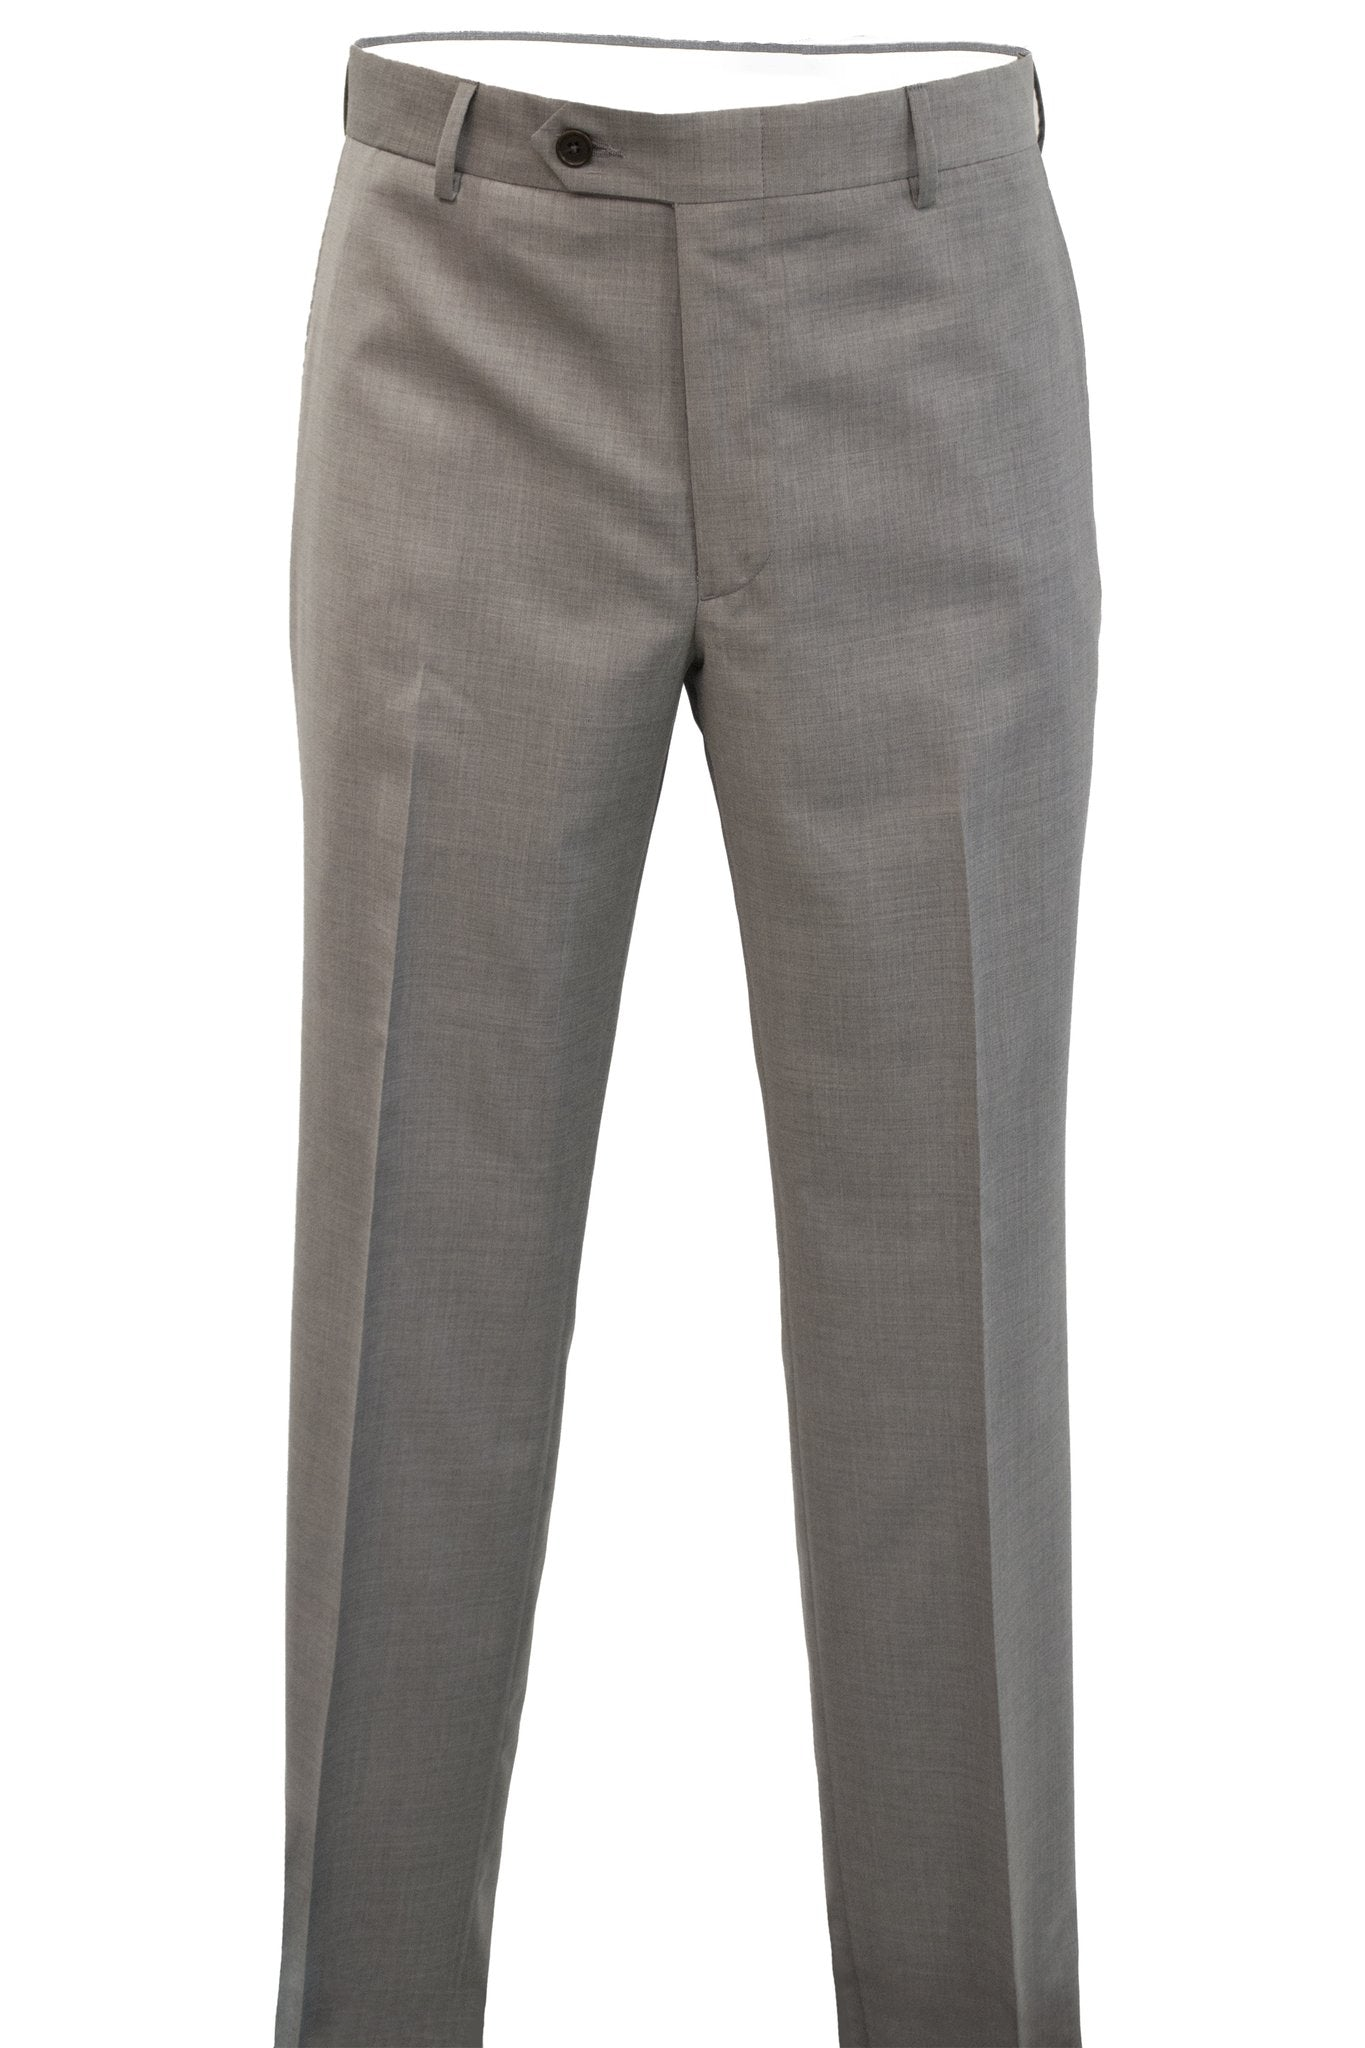 Modern Fit Light Grey Super 120's Wool Flat Front Dress Pant -  Hardwick.com